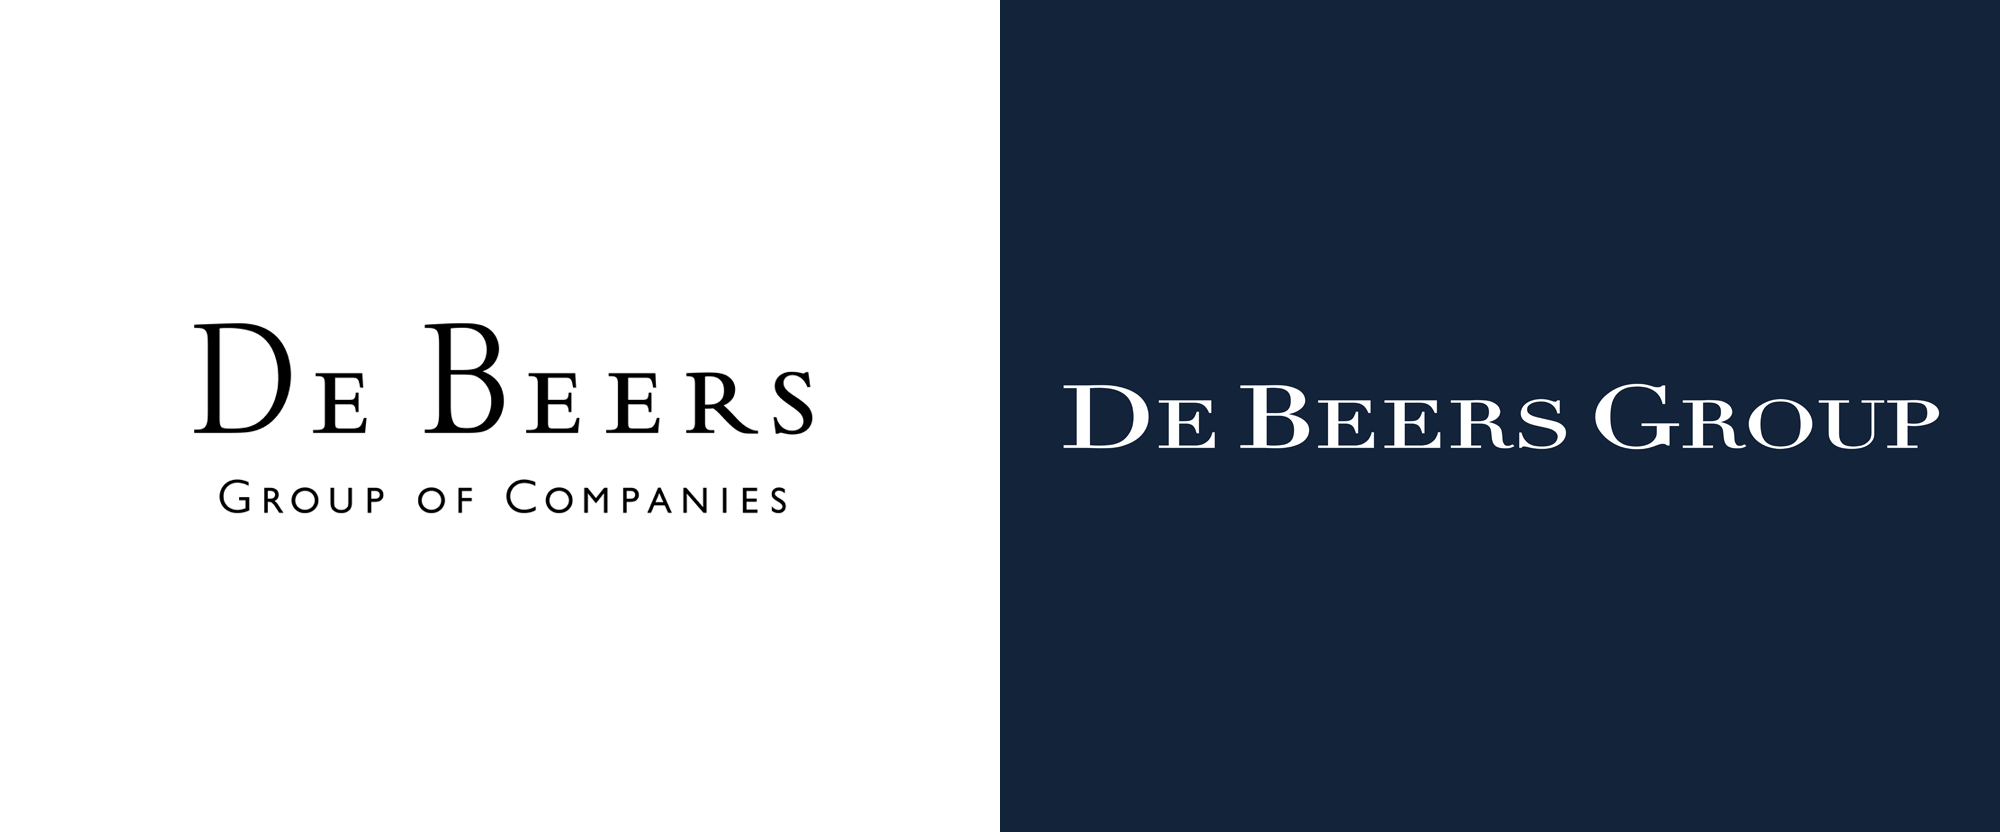 New Logo and Identity for De Beers Group by PW